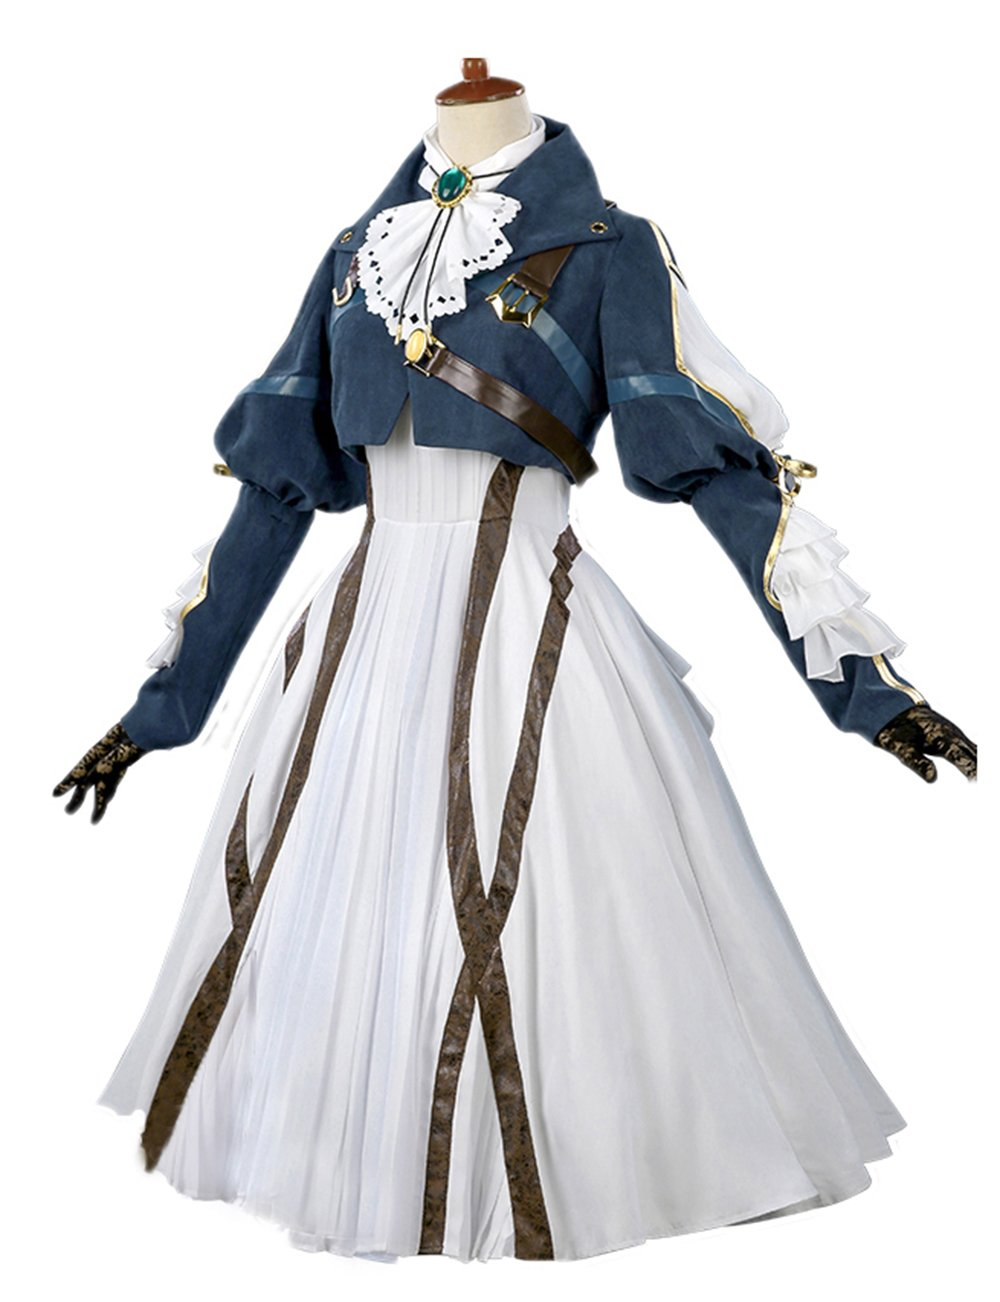 Nuoqi Violet Evergarden Cosplay Costume Womens Anime Uniforms Suit Dark Blue White